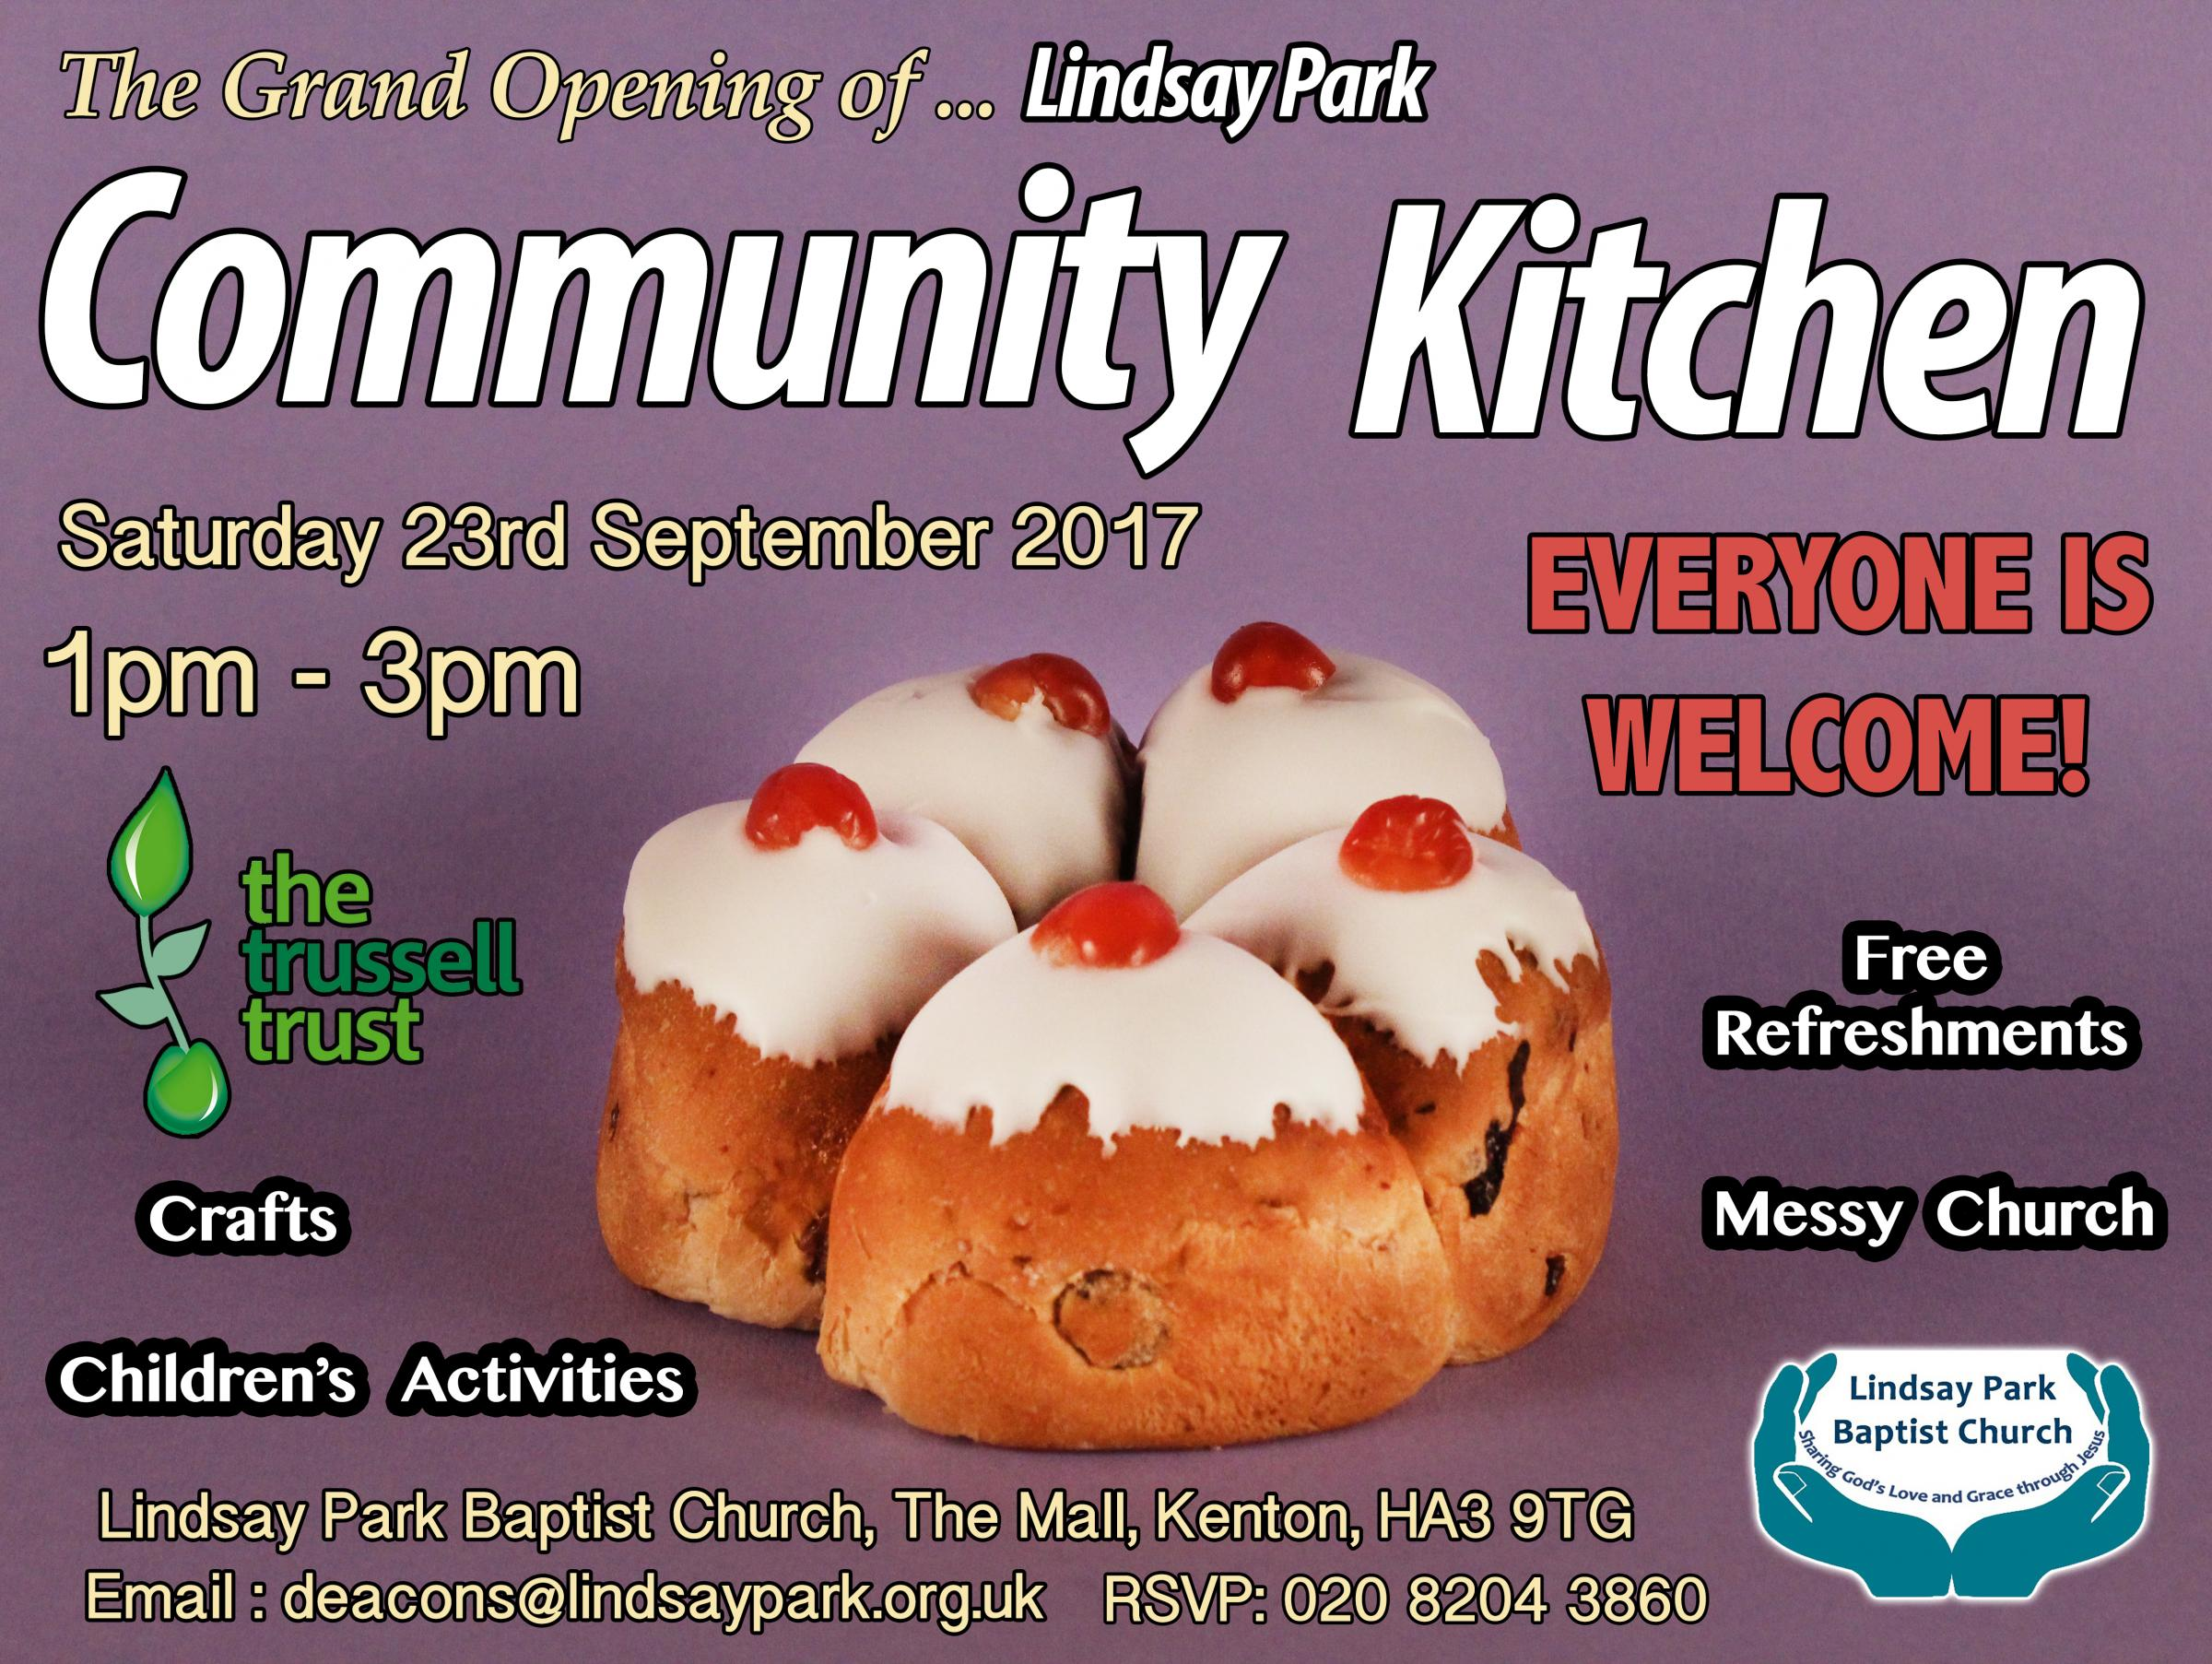 The Grand Opening of Lindsay Park Commumity Kitchen